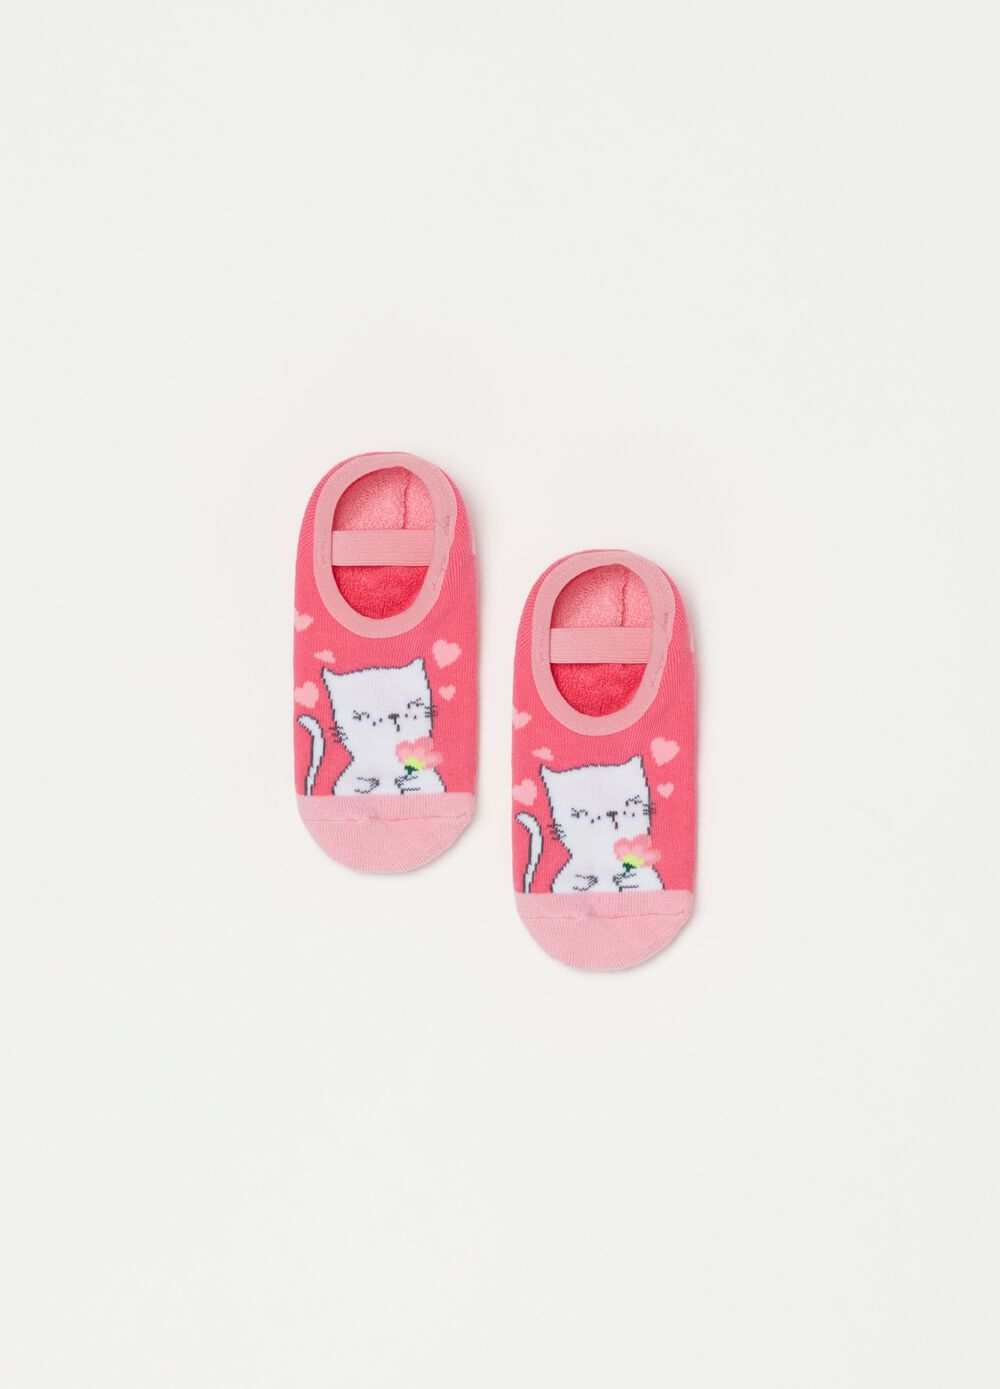 Printed slipper socks